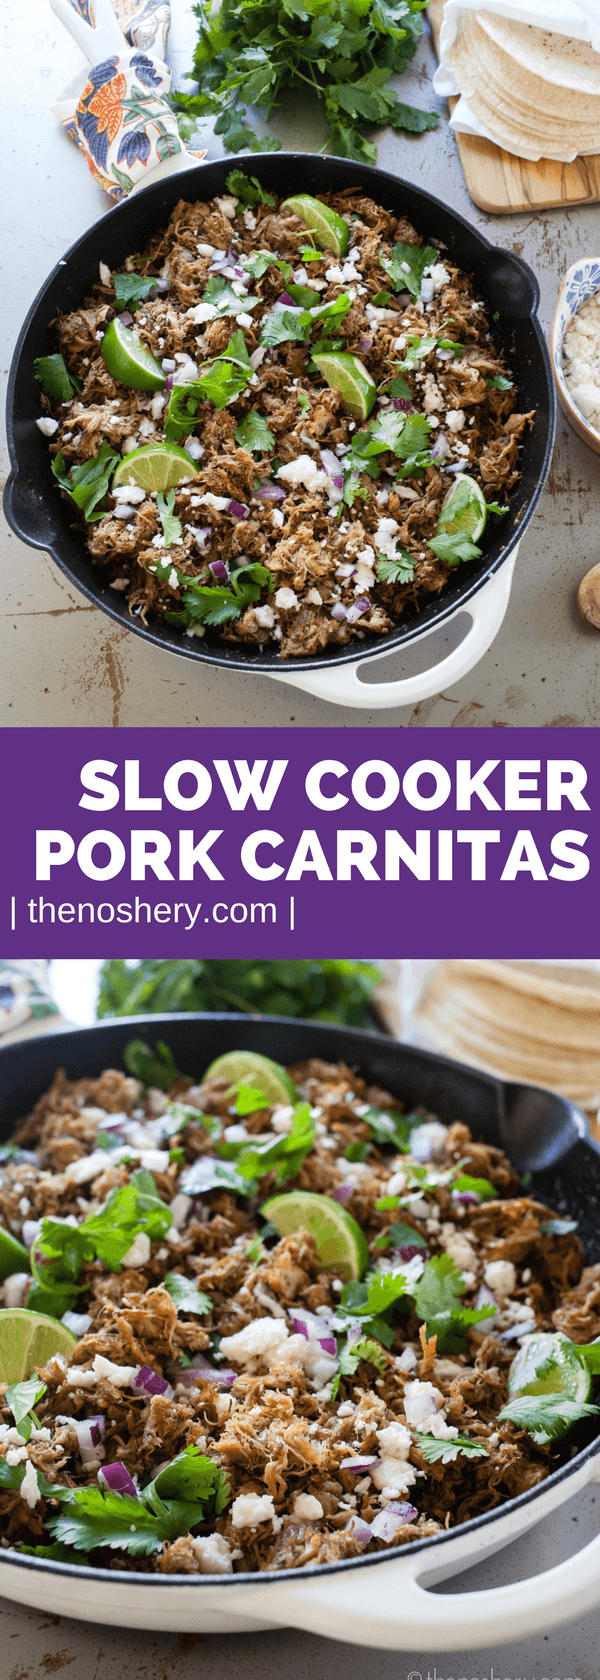 Slow Cooker Pork Carnitas | Make taco night a special night! Ditch the ground beef with the taco seasoning and try these easy and flavorful slow cooker carnitas tacos. | The Noshery